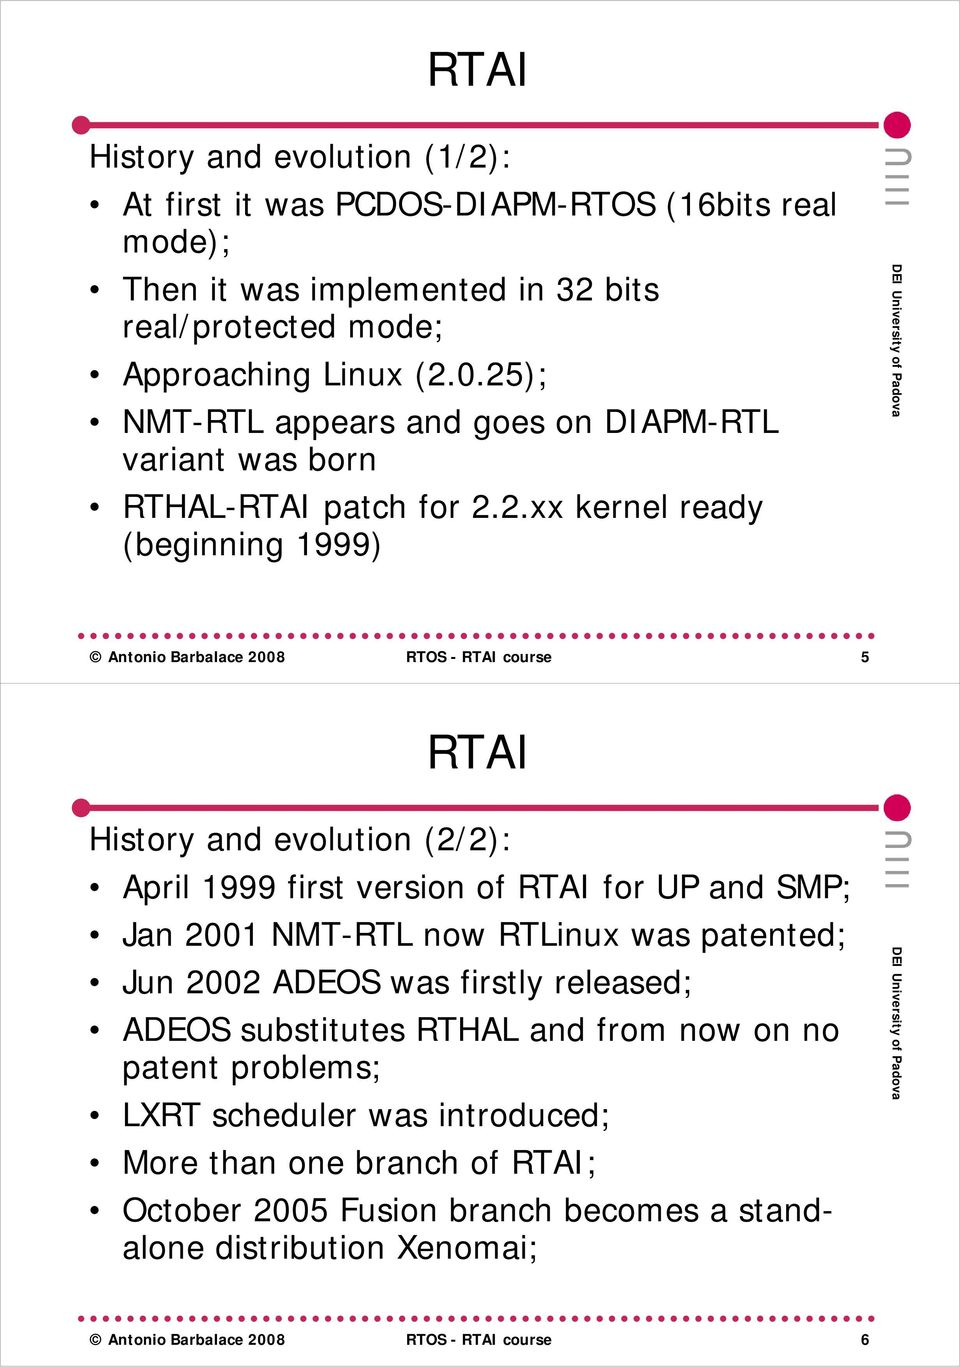 evolution (2/2): April 1999 first version of for UP and SMP; Jan 2001 NMT-RTL now RTLinux was patented; Jun 2002 ADEOS was firstly released; ADEOS substitutes RTHAL and